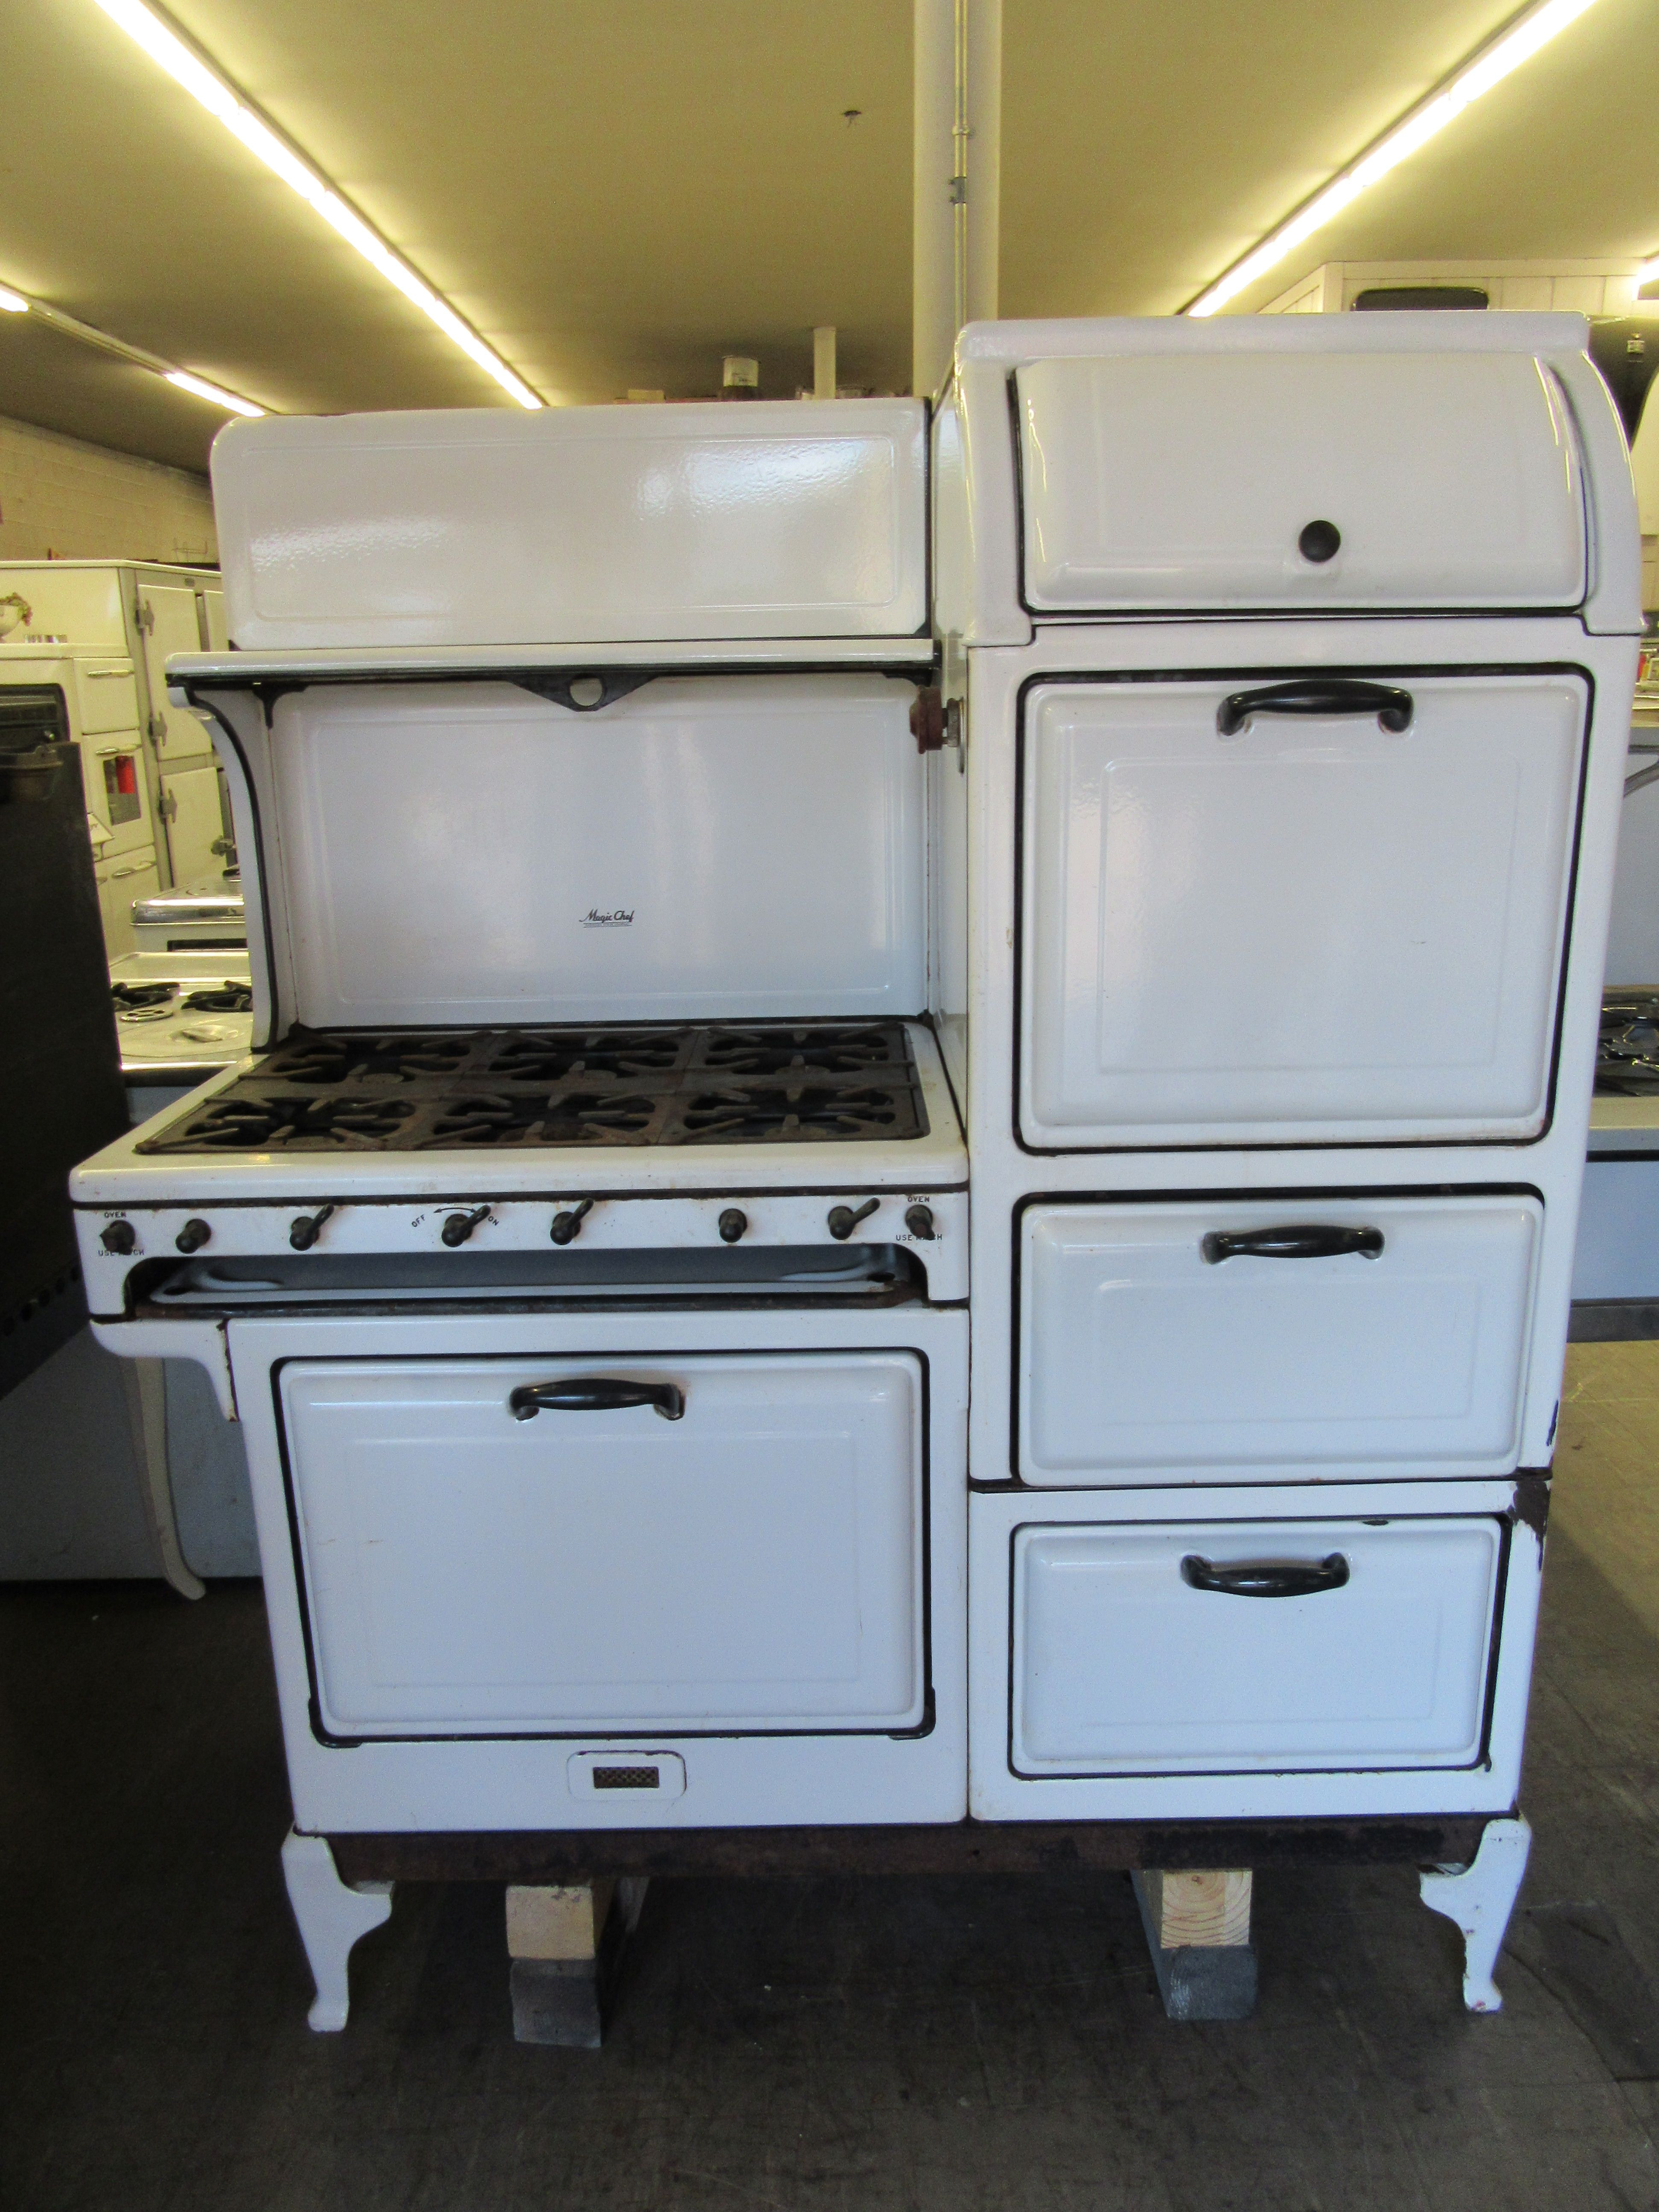 Unrestored Antique Stoves | Vintage Stoves | Antique stove